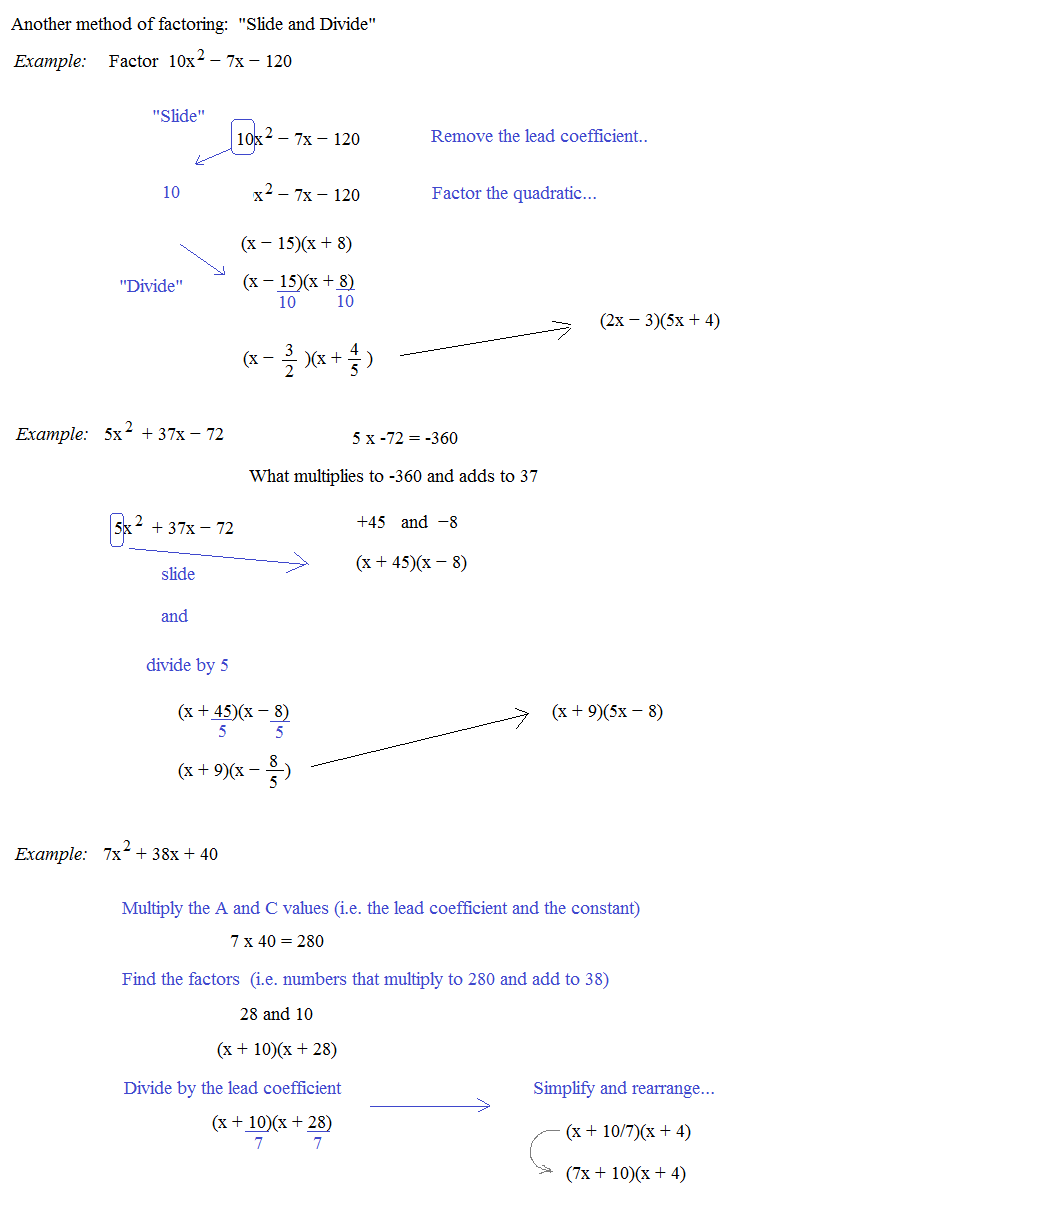 Worksheet Solve Quadratics By Factoring Worksheet Carlos Lomas Worksheet For Everyone